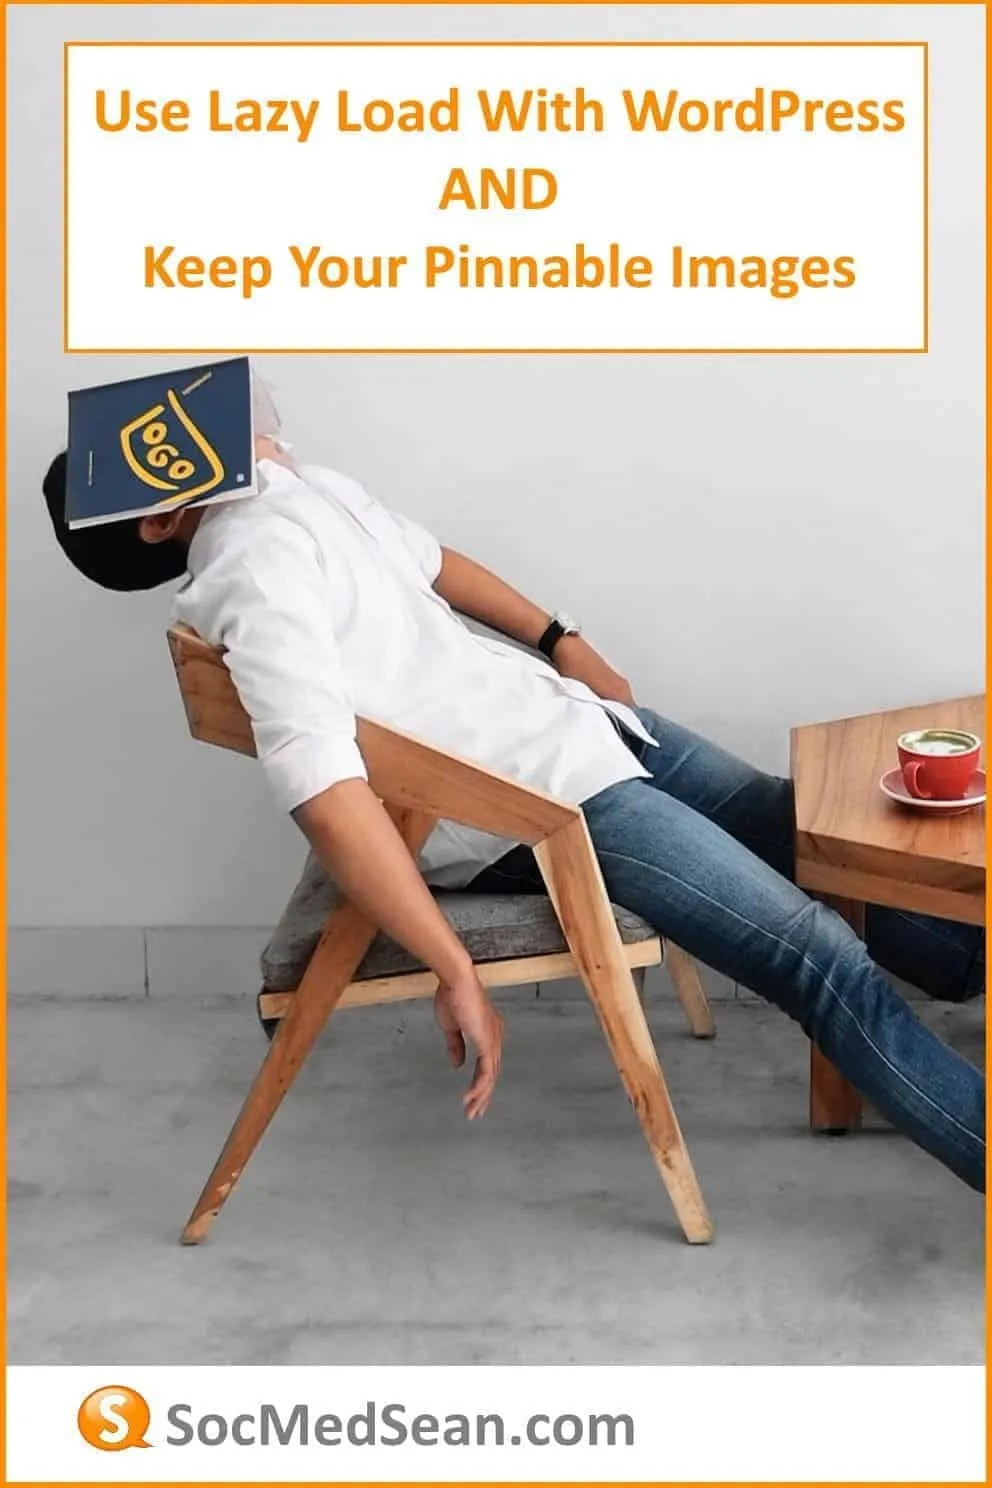 Lazy load your images and keep them pinnable on your WordPress site!